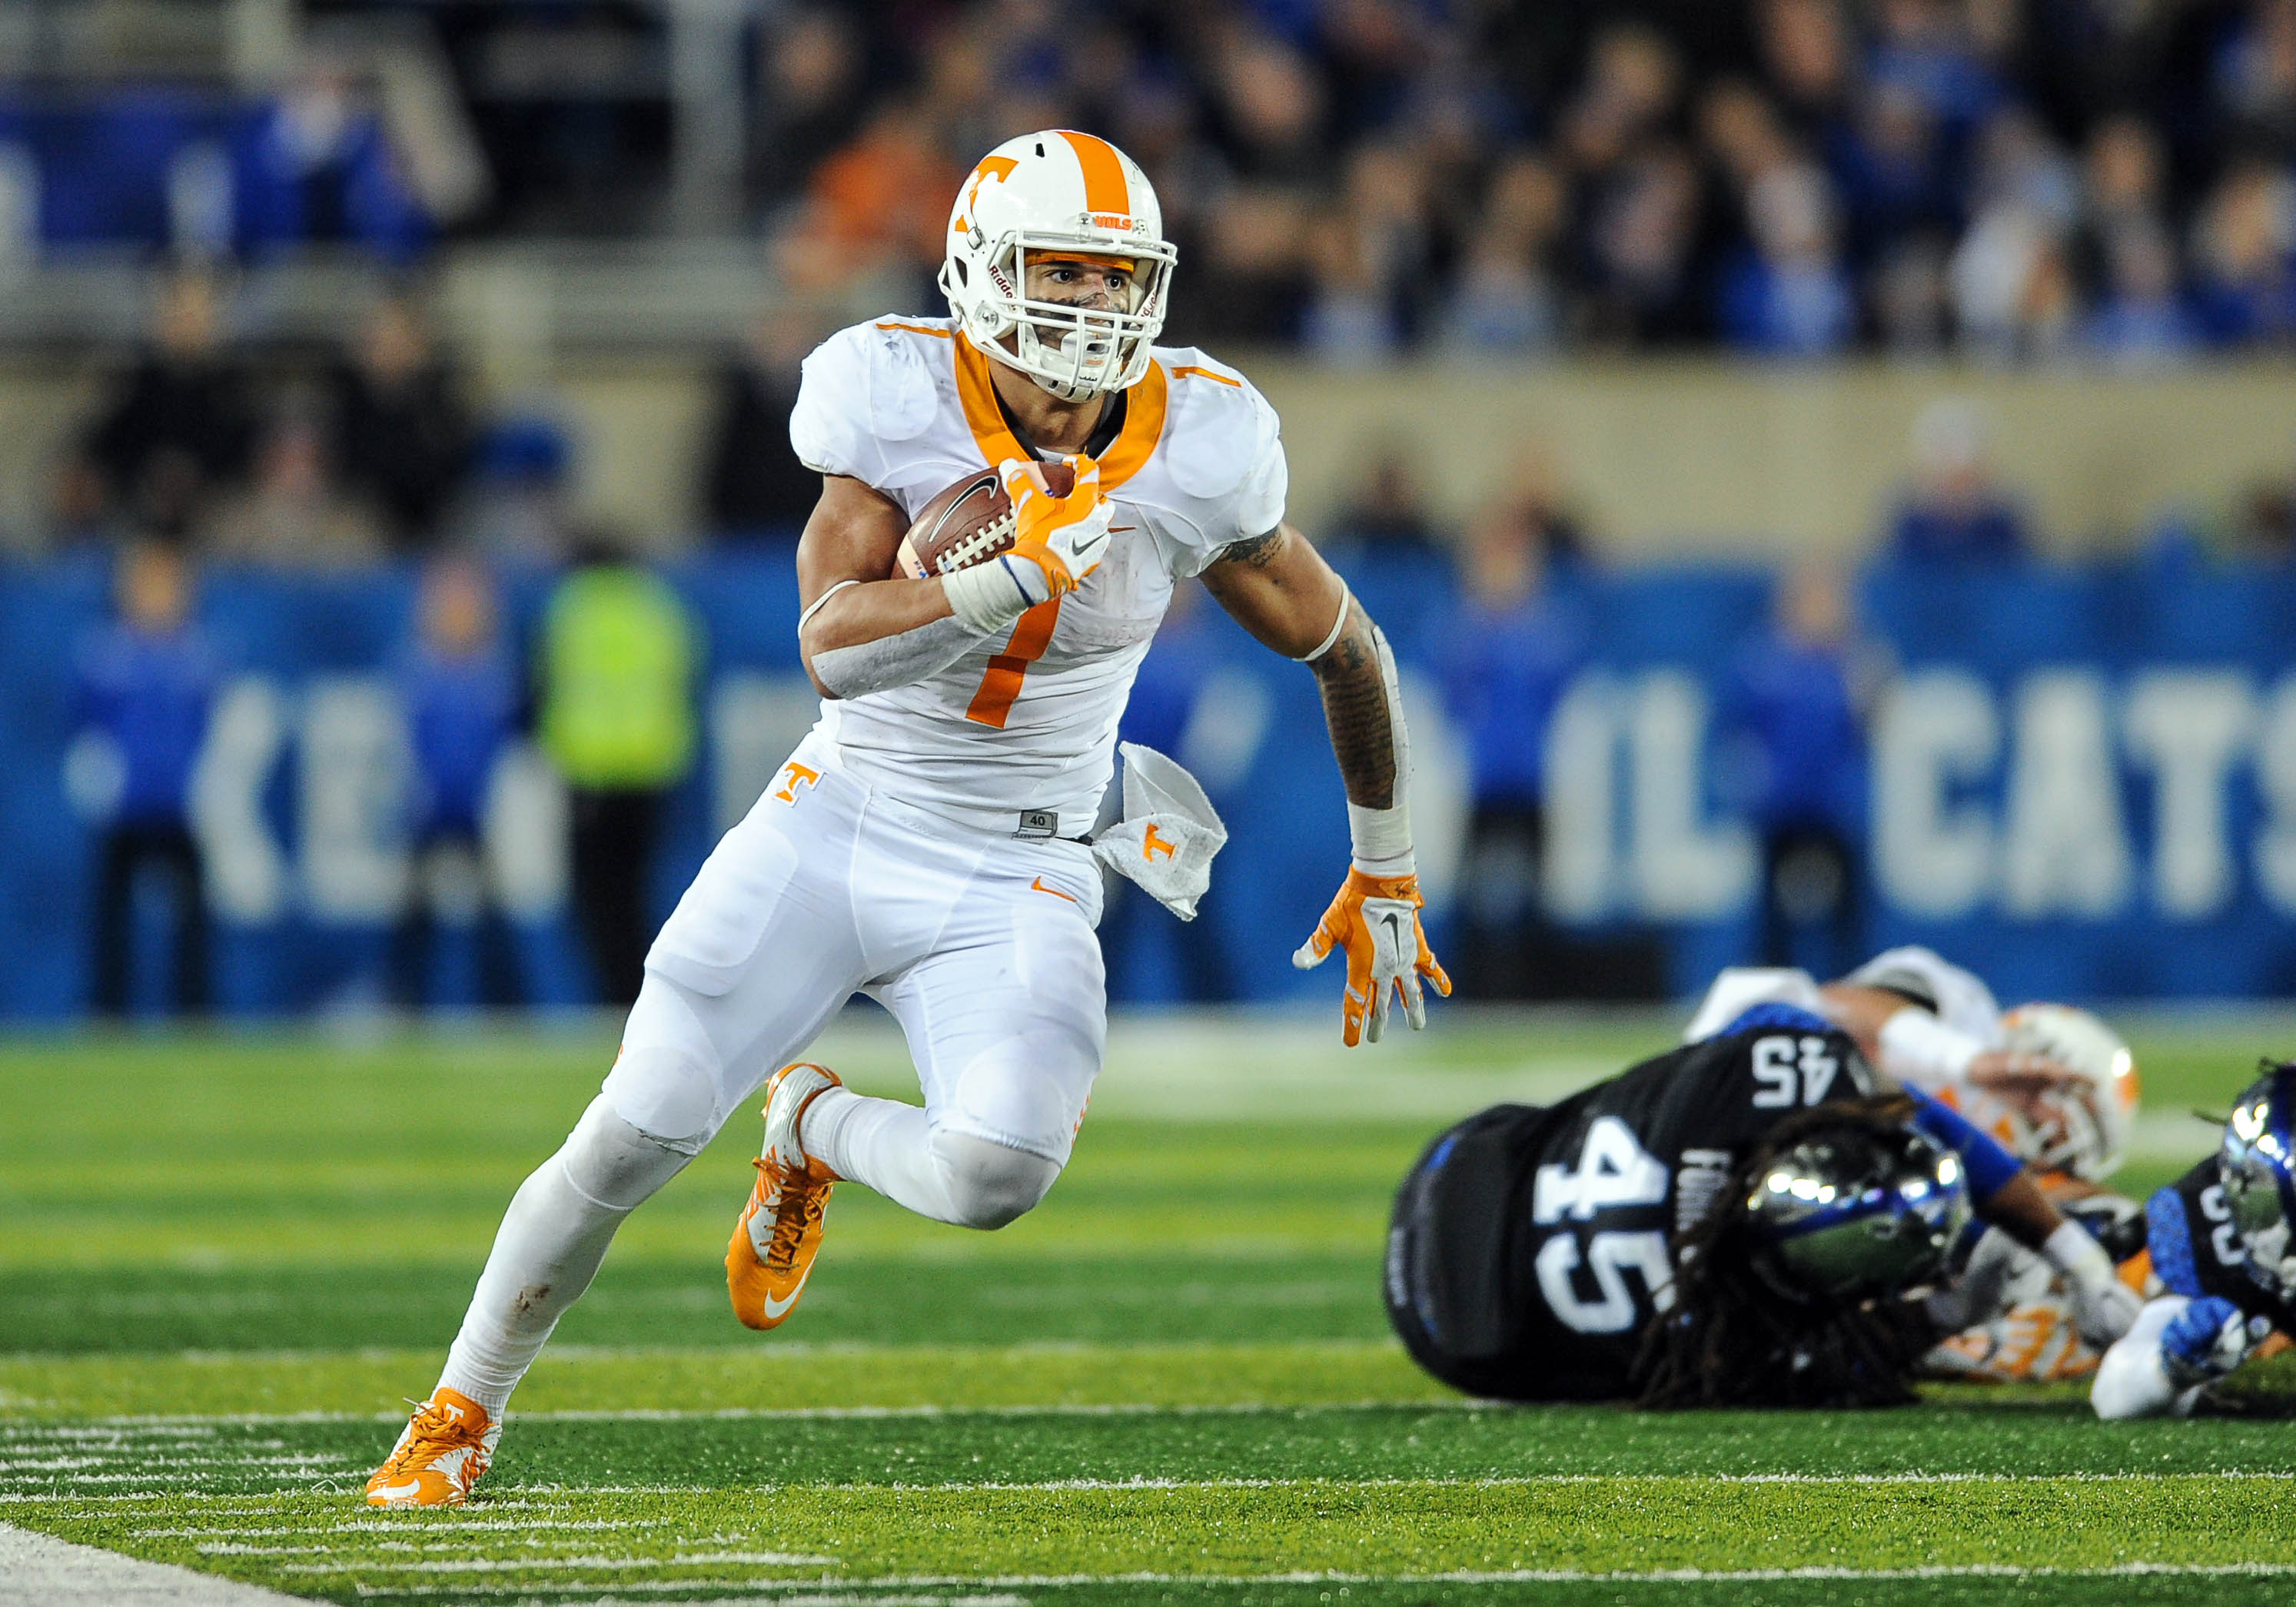 Oct 31, 2015; Lexington, KY, USA; Tennessee Volunteers running back Jalen Hurd (1) runs for a touchdown against the Kentucky Wildcats at Commonwealth Stadium. Mandatory Credit: Bryan Lynn-USA TODAY Sports